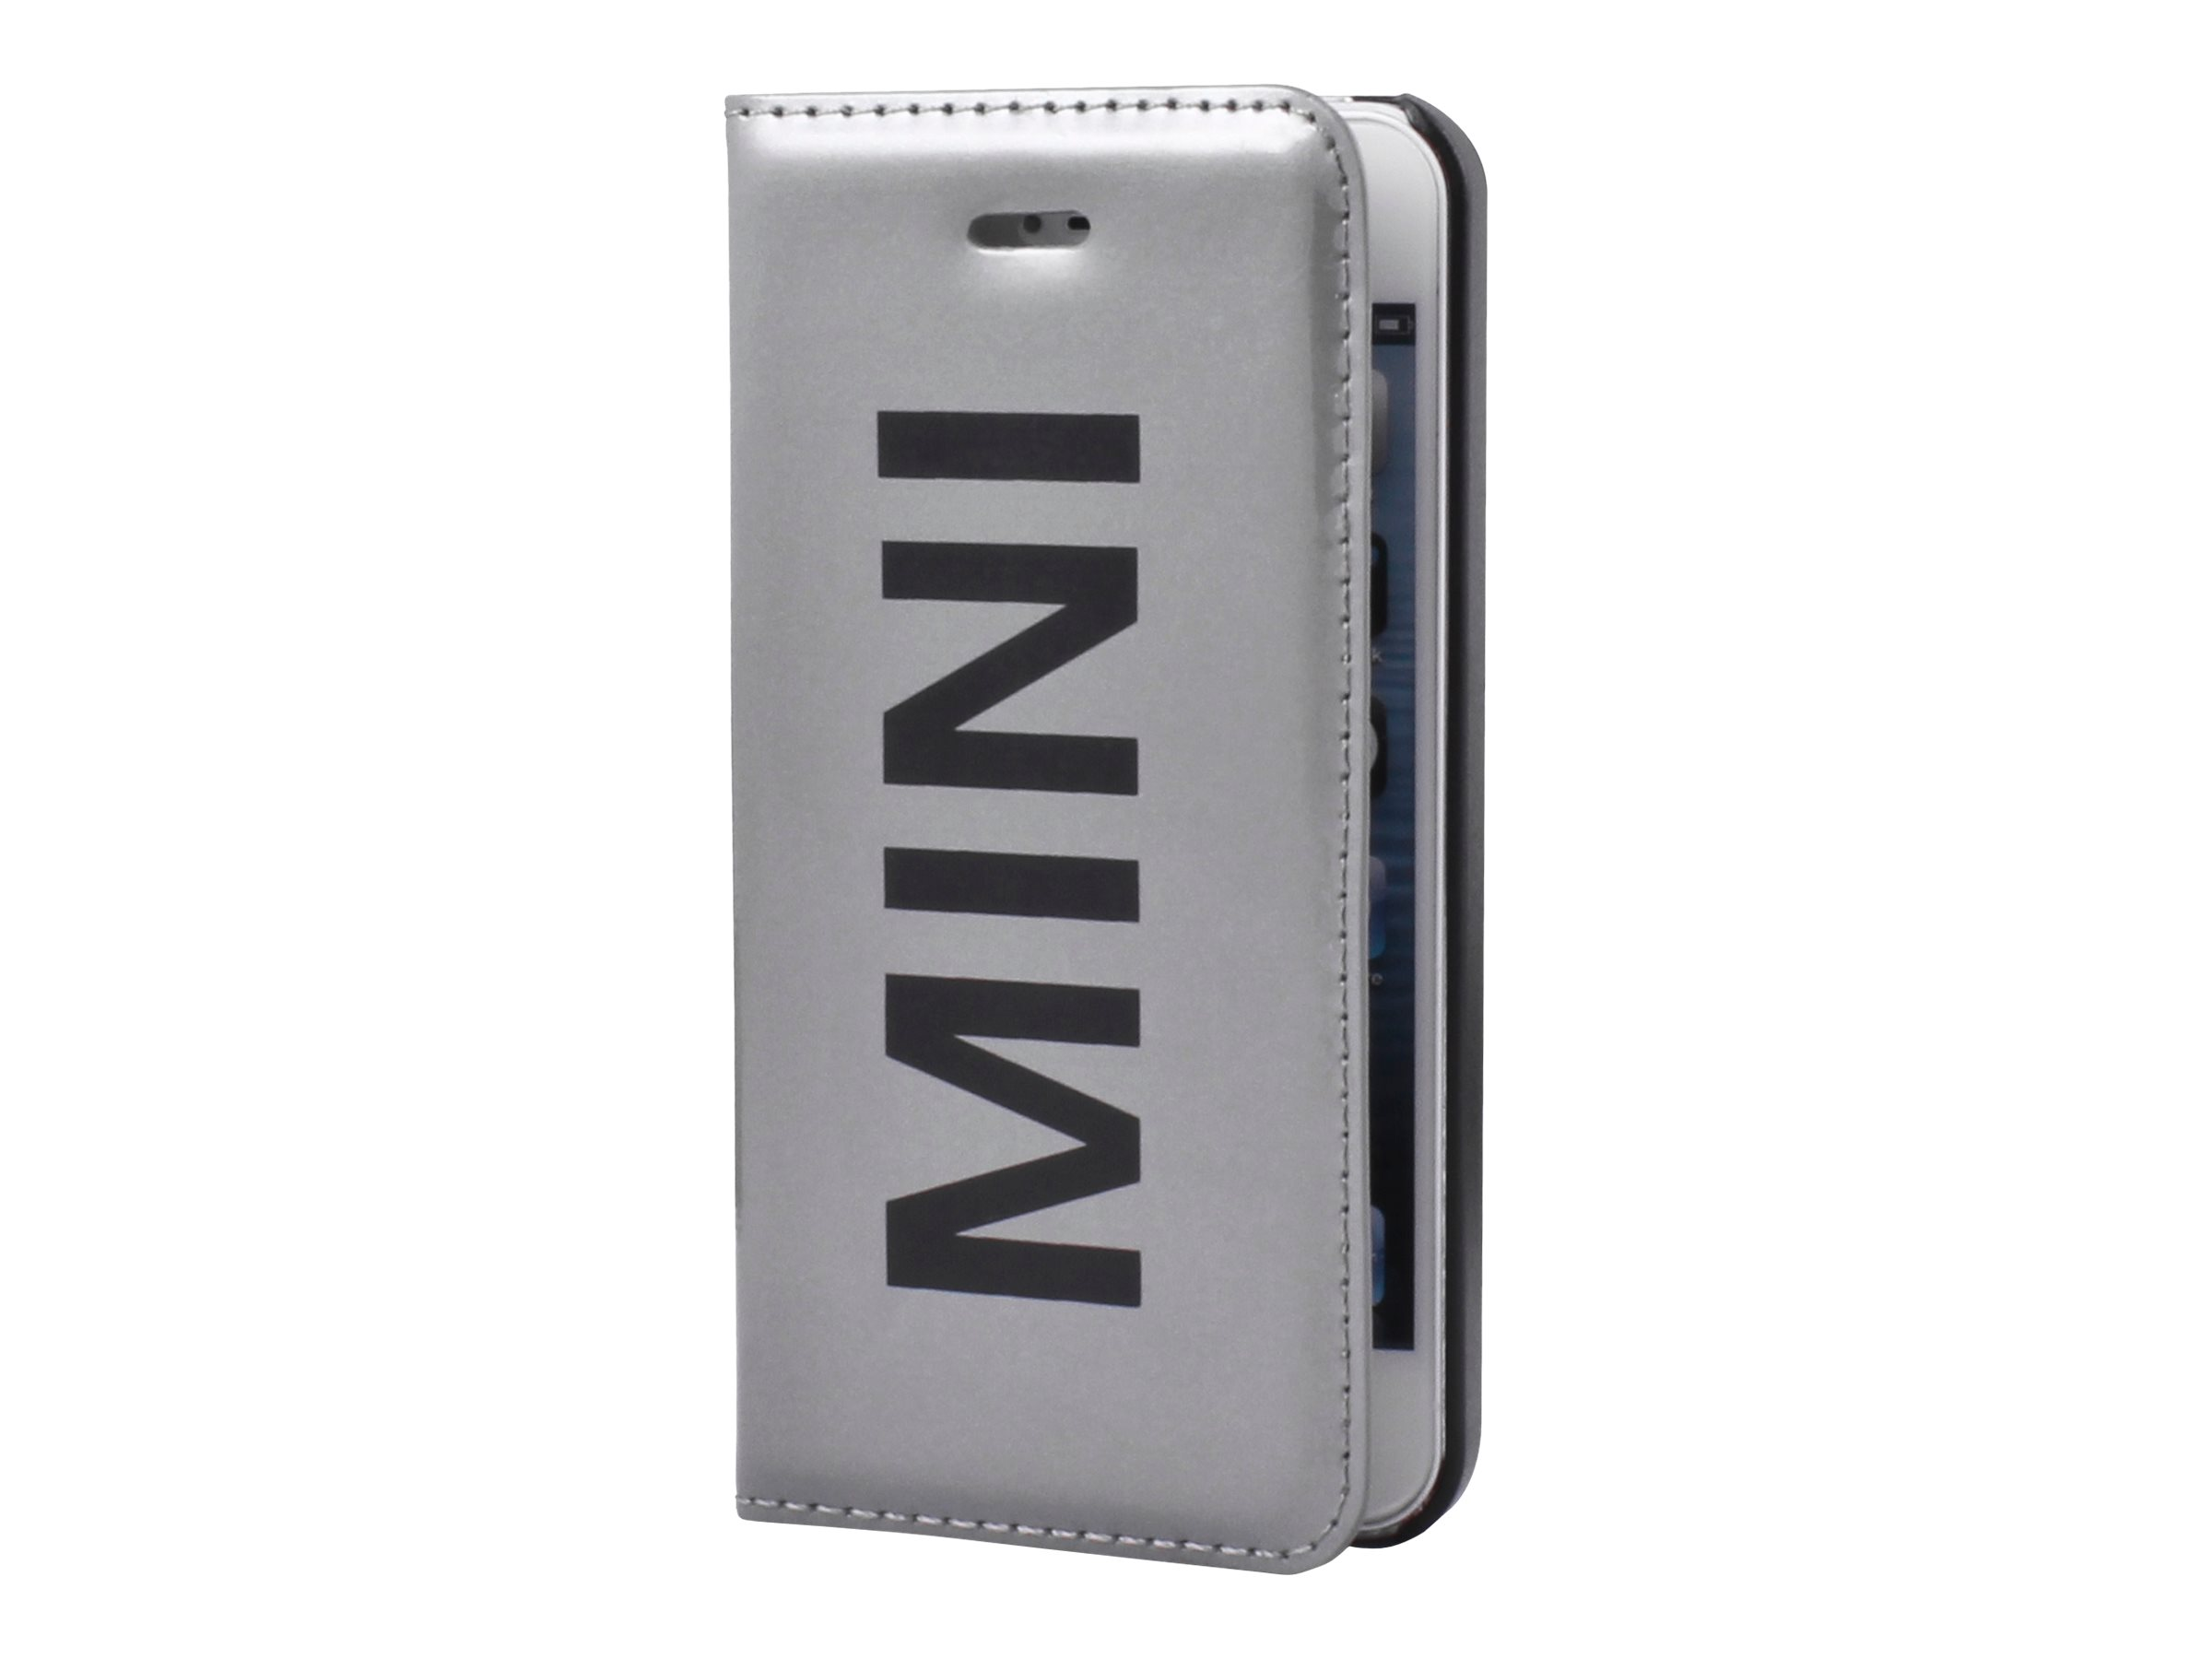 MINI Folio case - Protection à rabat  pour Apple iPhone 5, 5s - vinyle argent